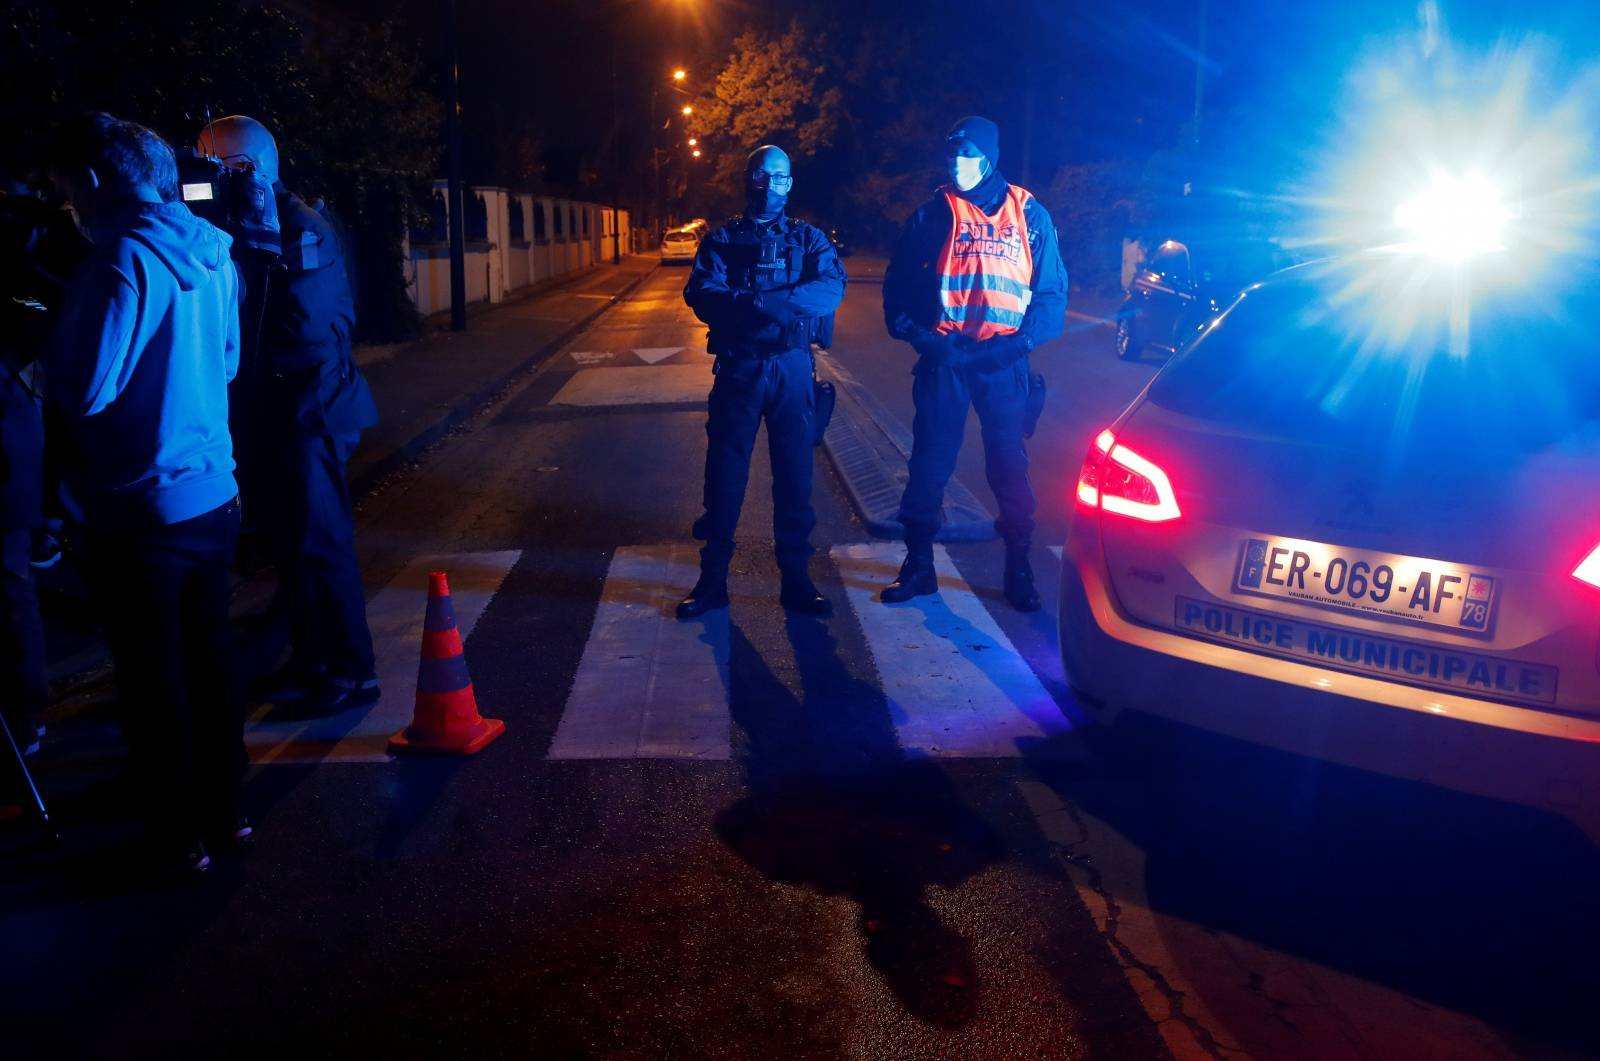 Stabbing attack in the Paris suburb of Conflans St Honorine